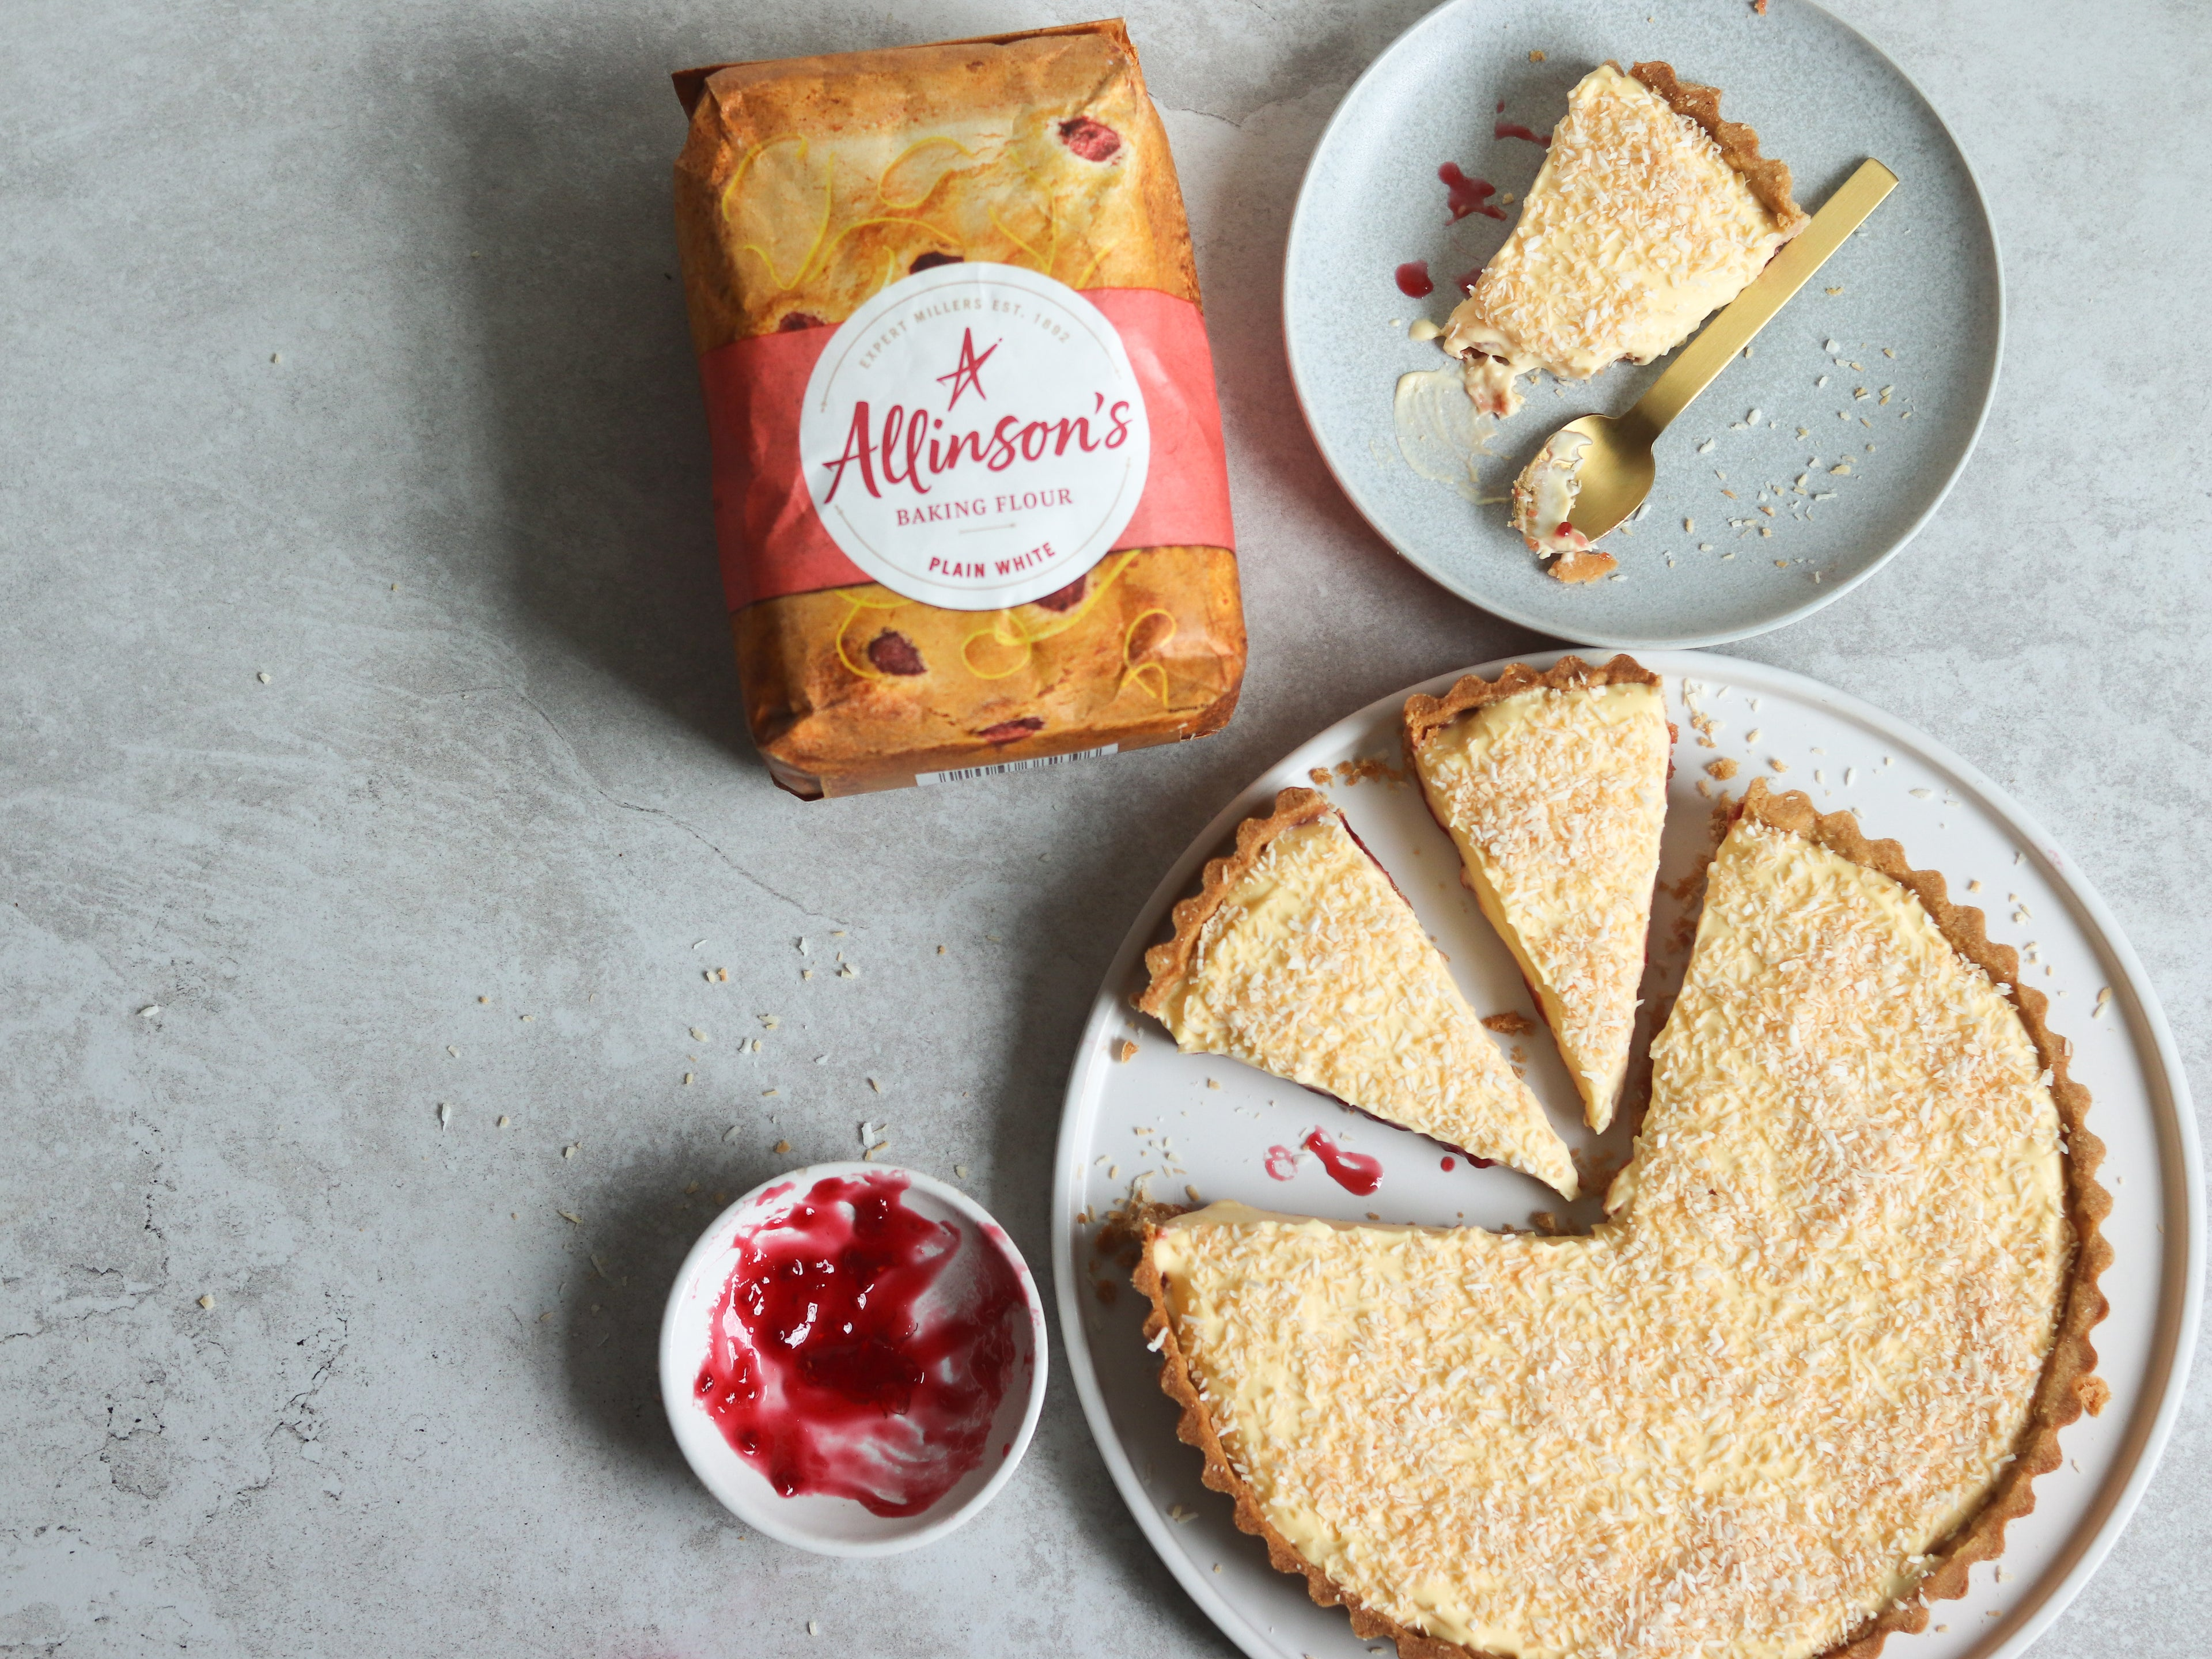 Top view of a Manchester Tart sliced with pieces to serve. Next to a bag of Allinson's Plain Flour and a slice of Manchester Tart on a plate with a spoon covered in toasted coconut